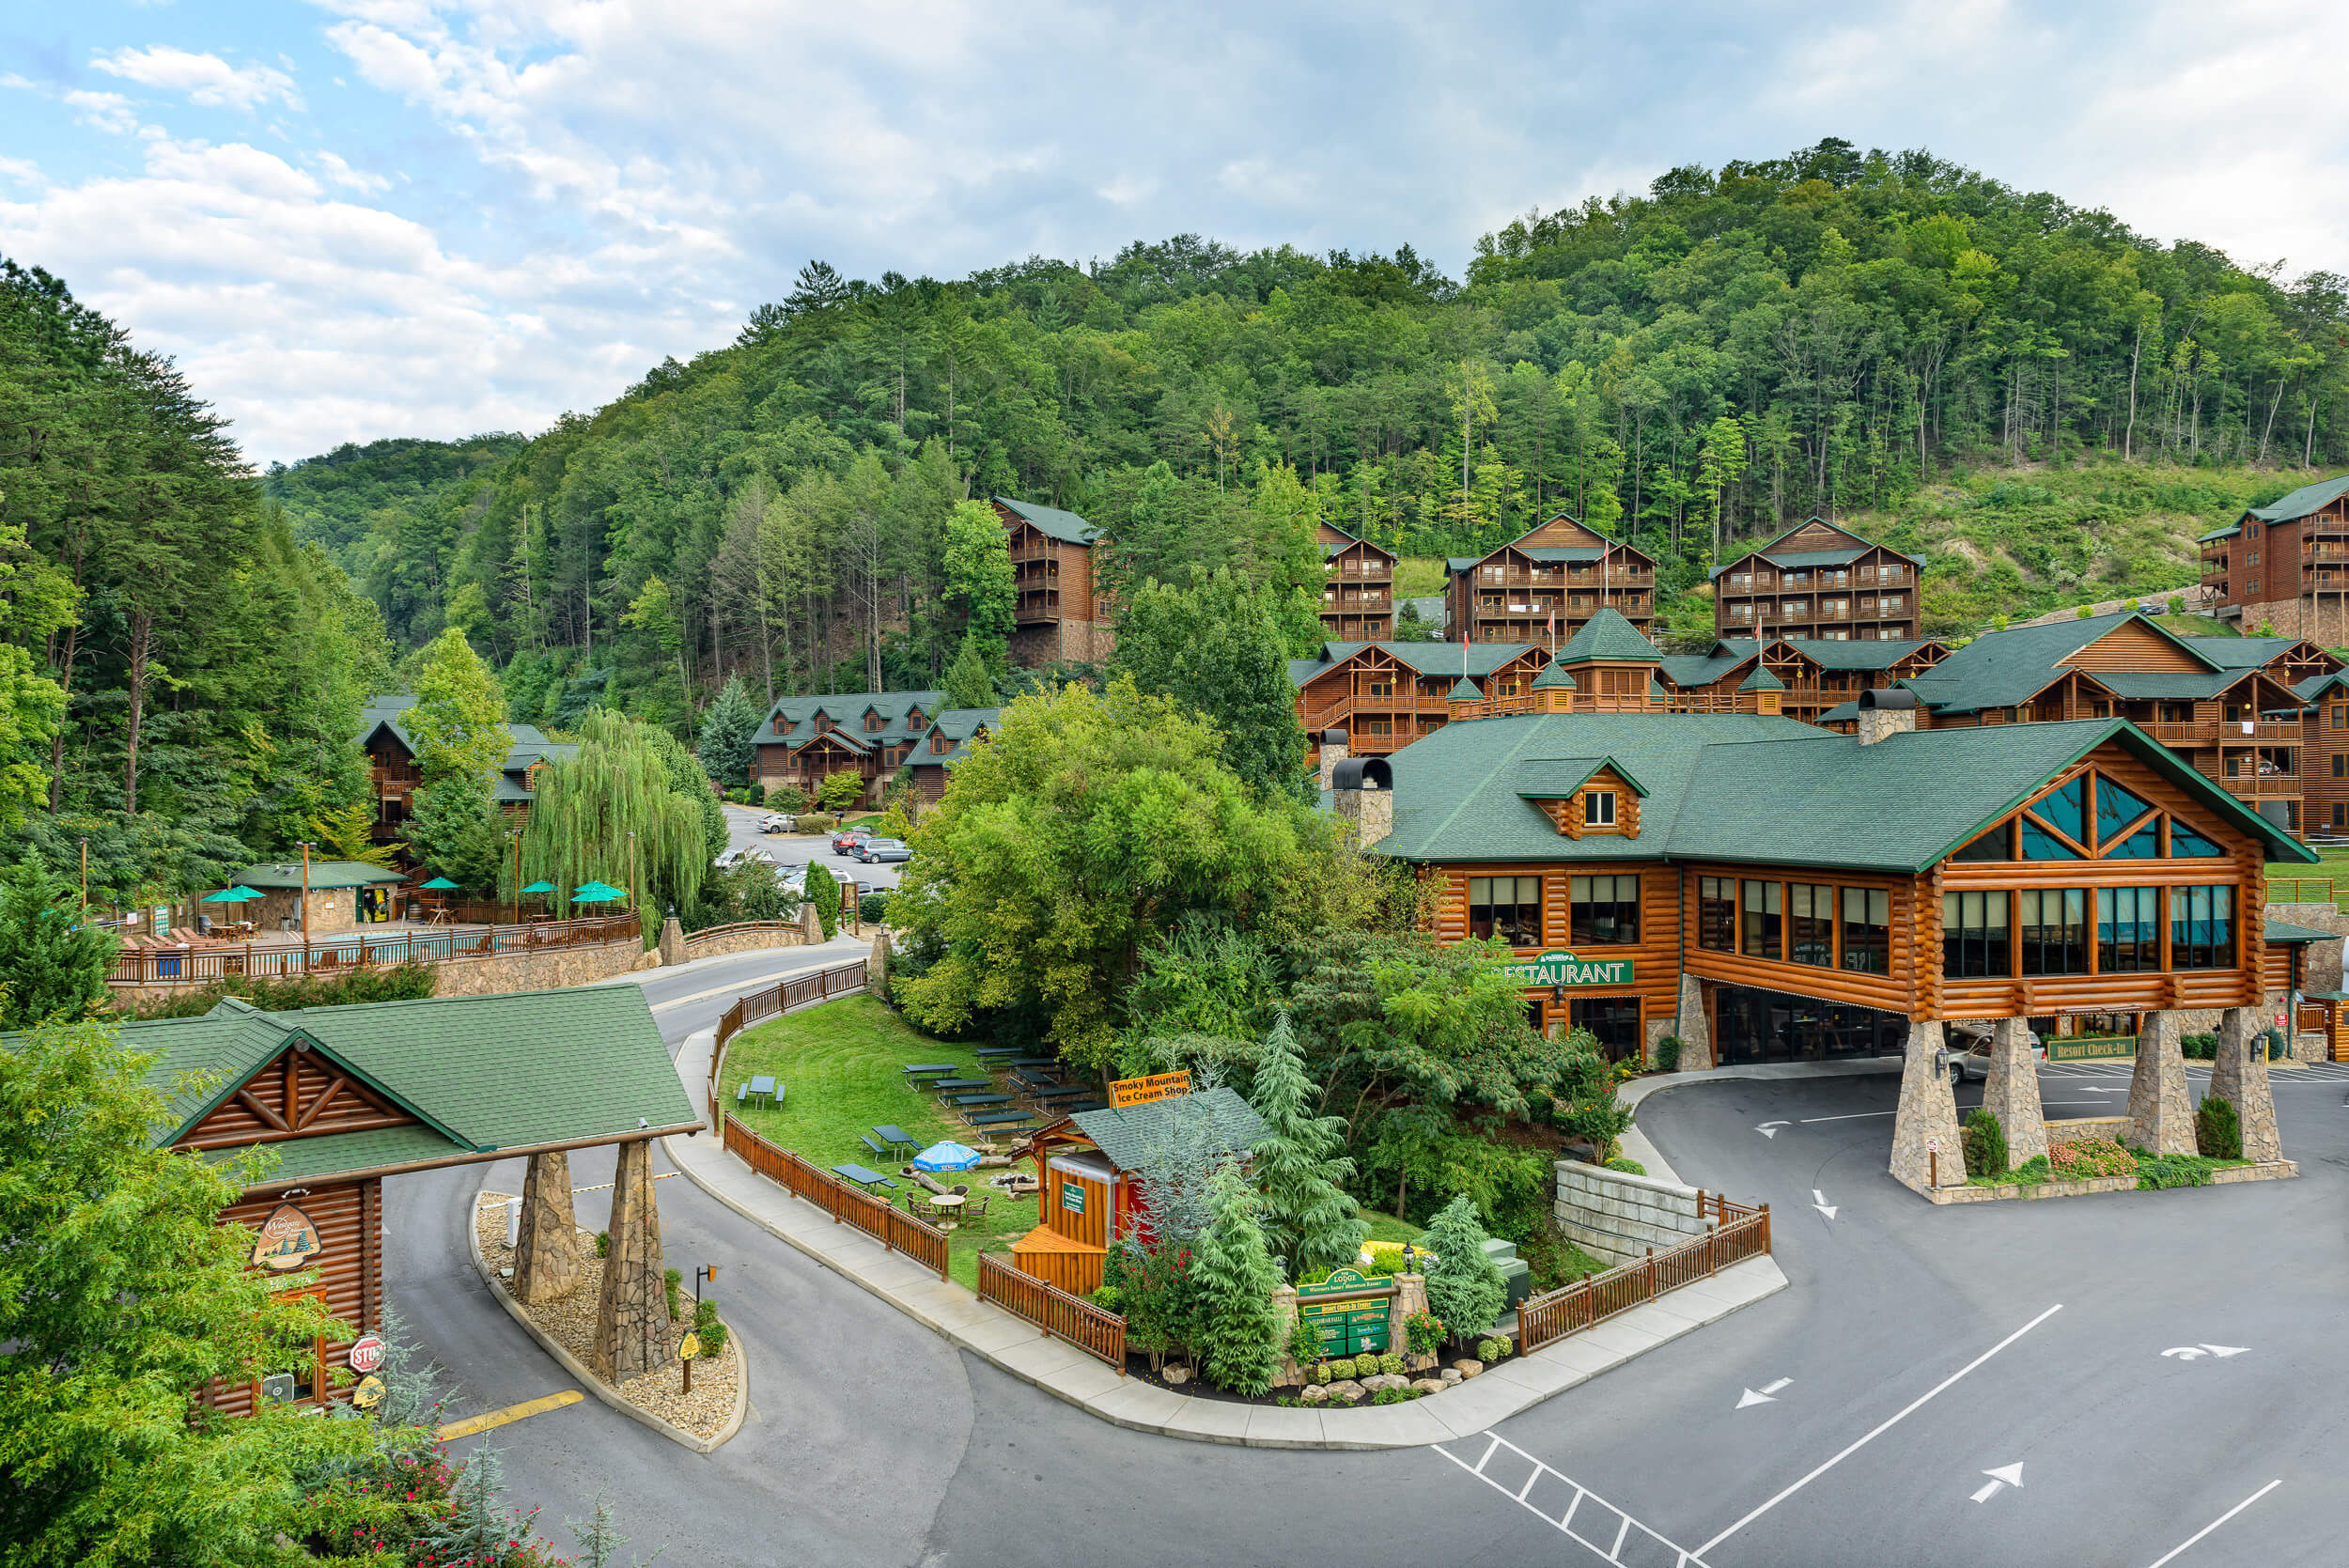 Main entrance to Smoky Mountain resort | Westgate Smoky Mountain Resort & Spa